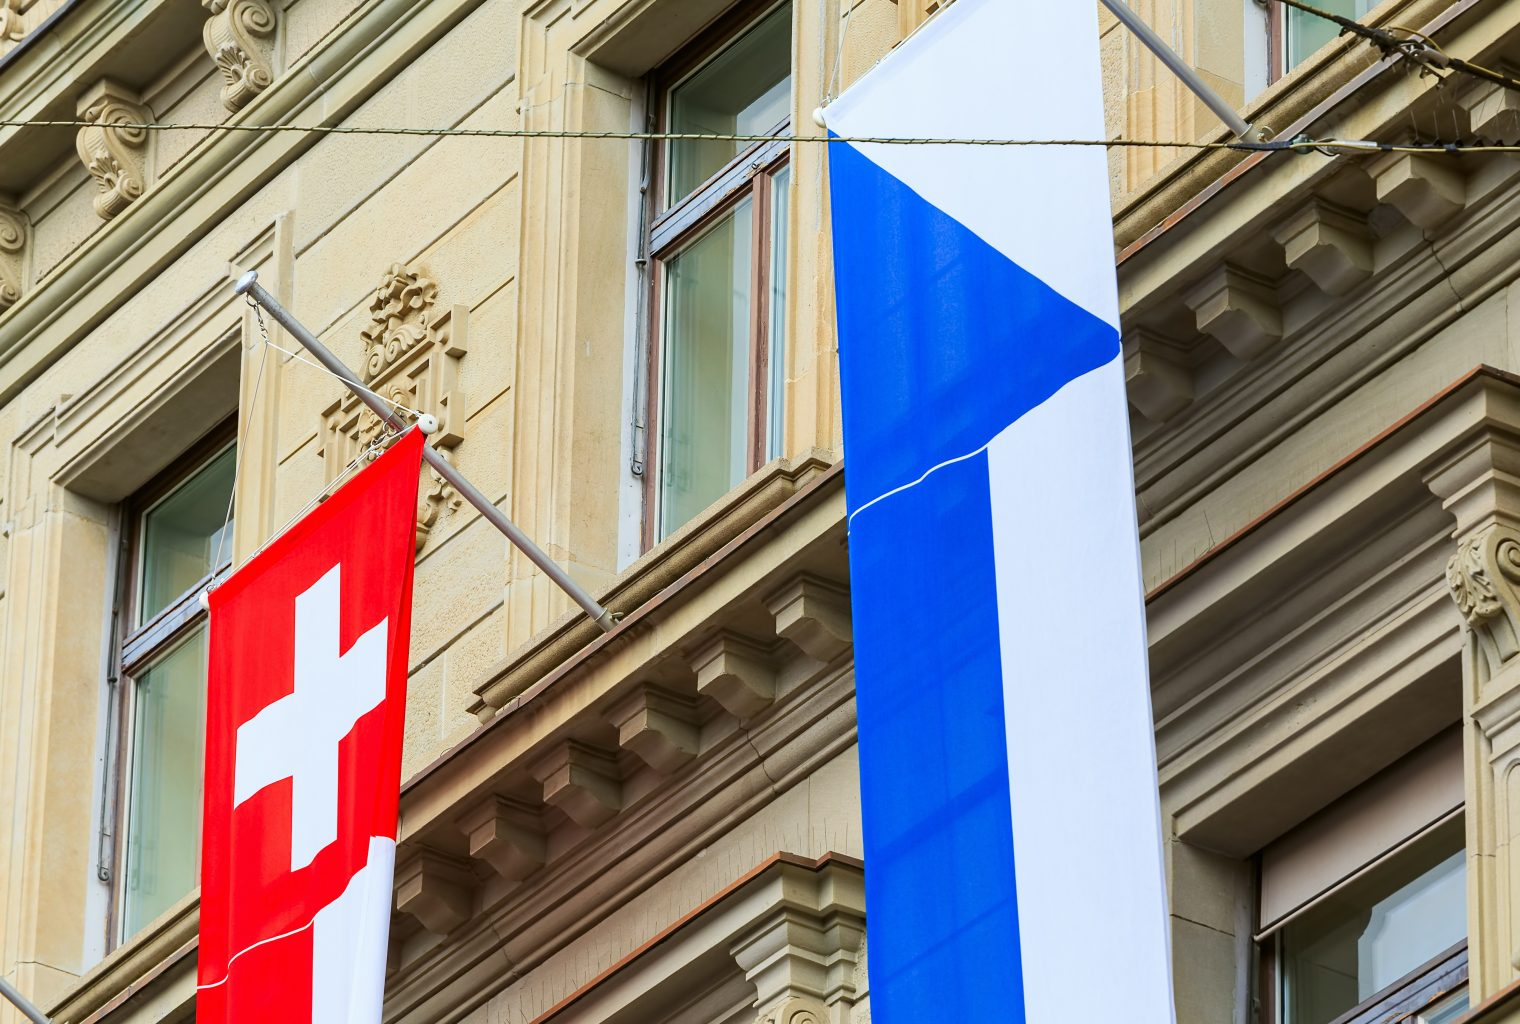 Swiss Banks Team With Fintechs to Enter the Crypto Space